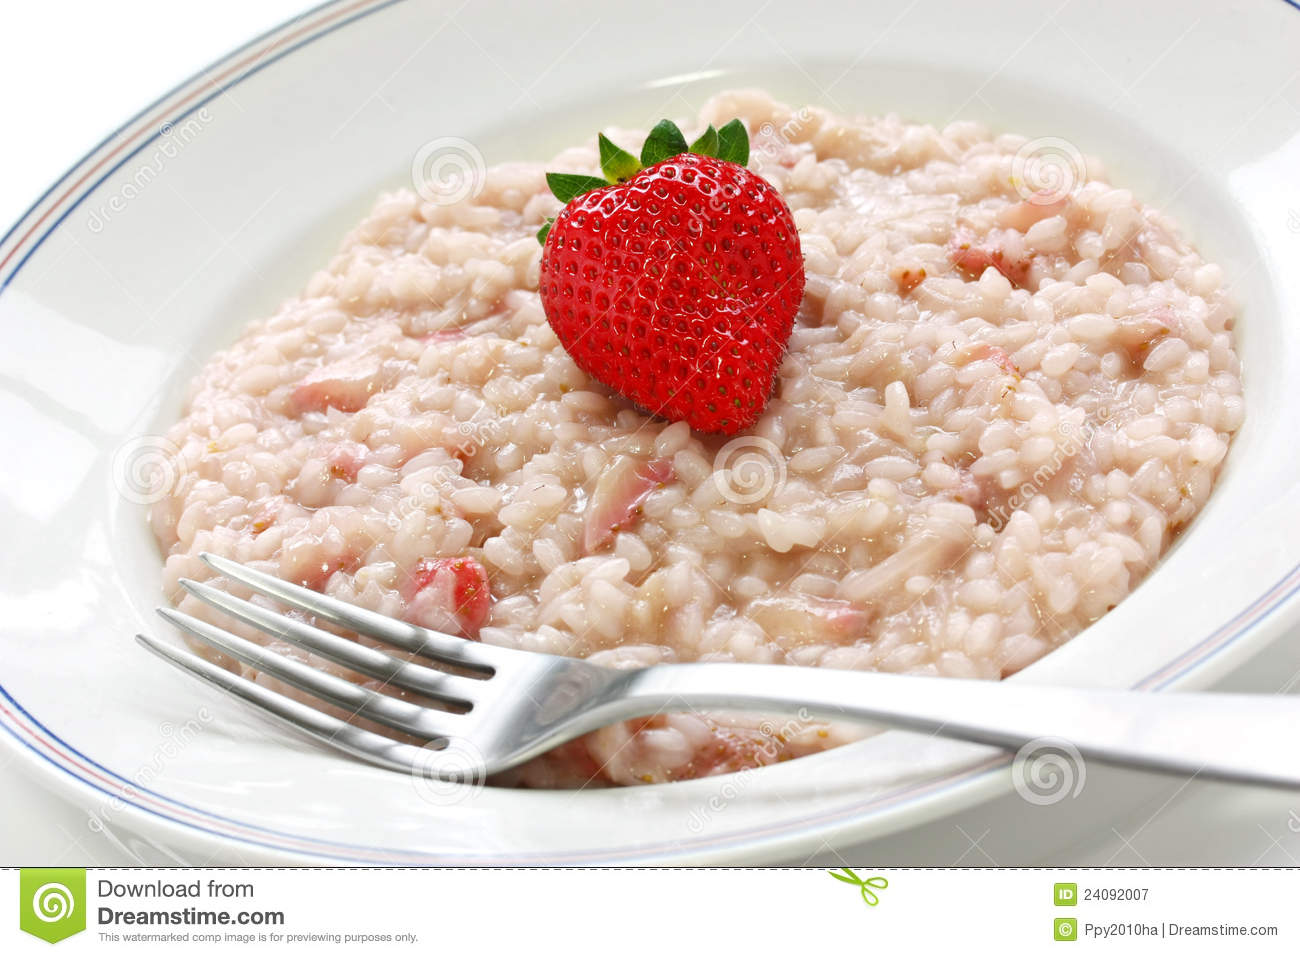 Strawberry Risotto Royalty Free Stock Photography - Image: 24092007